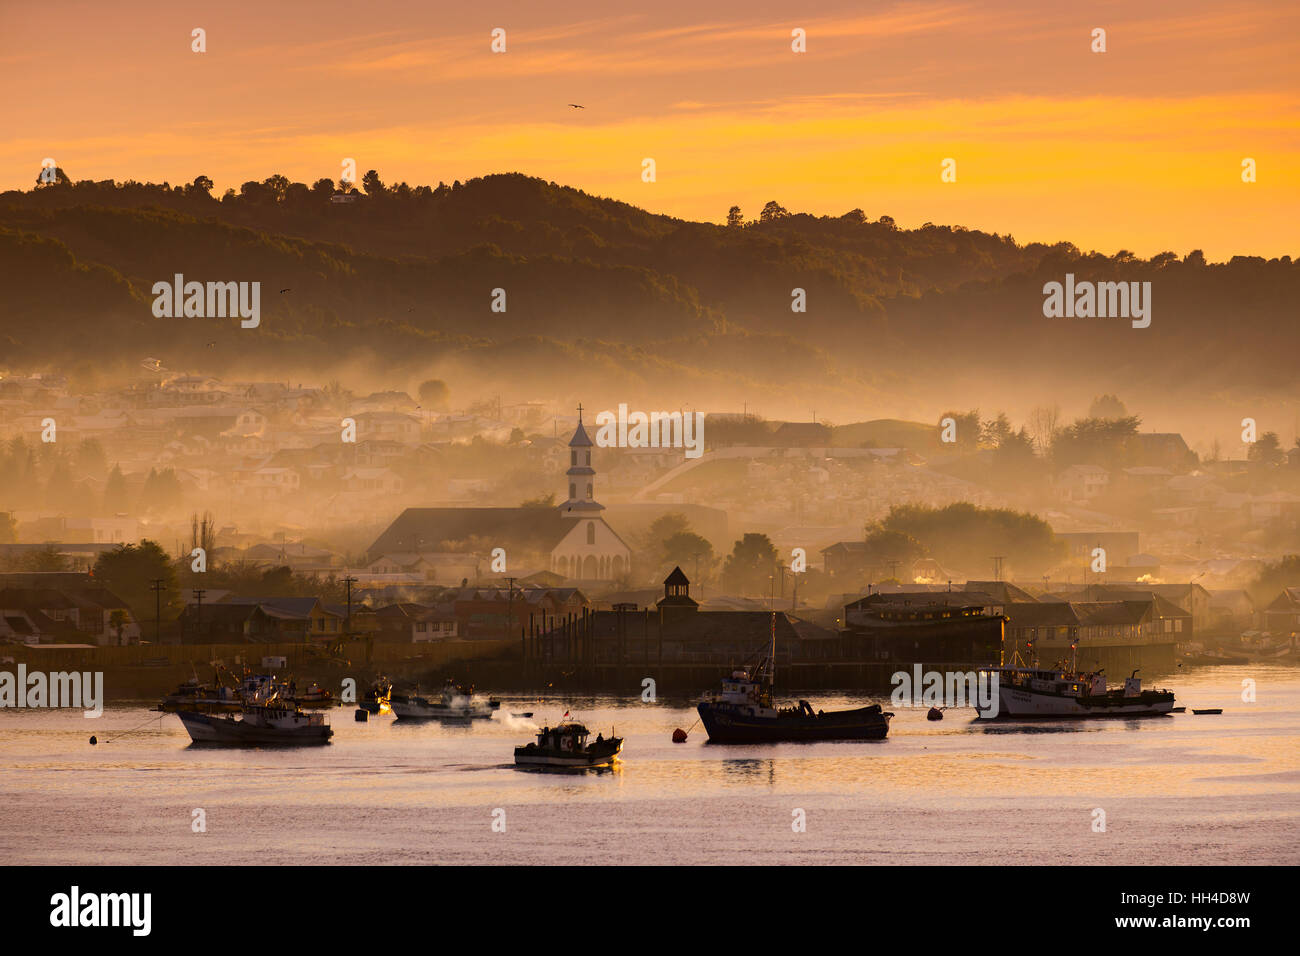 Big island of Chiloé. The lakes, Chile. Dalcahue city. - Stock Image